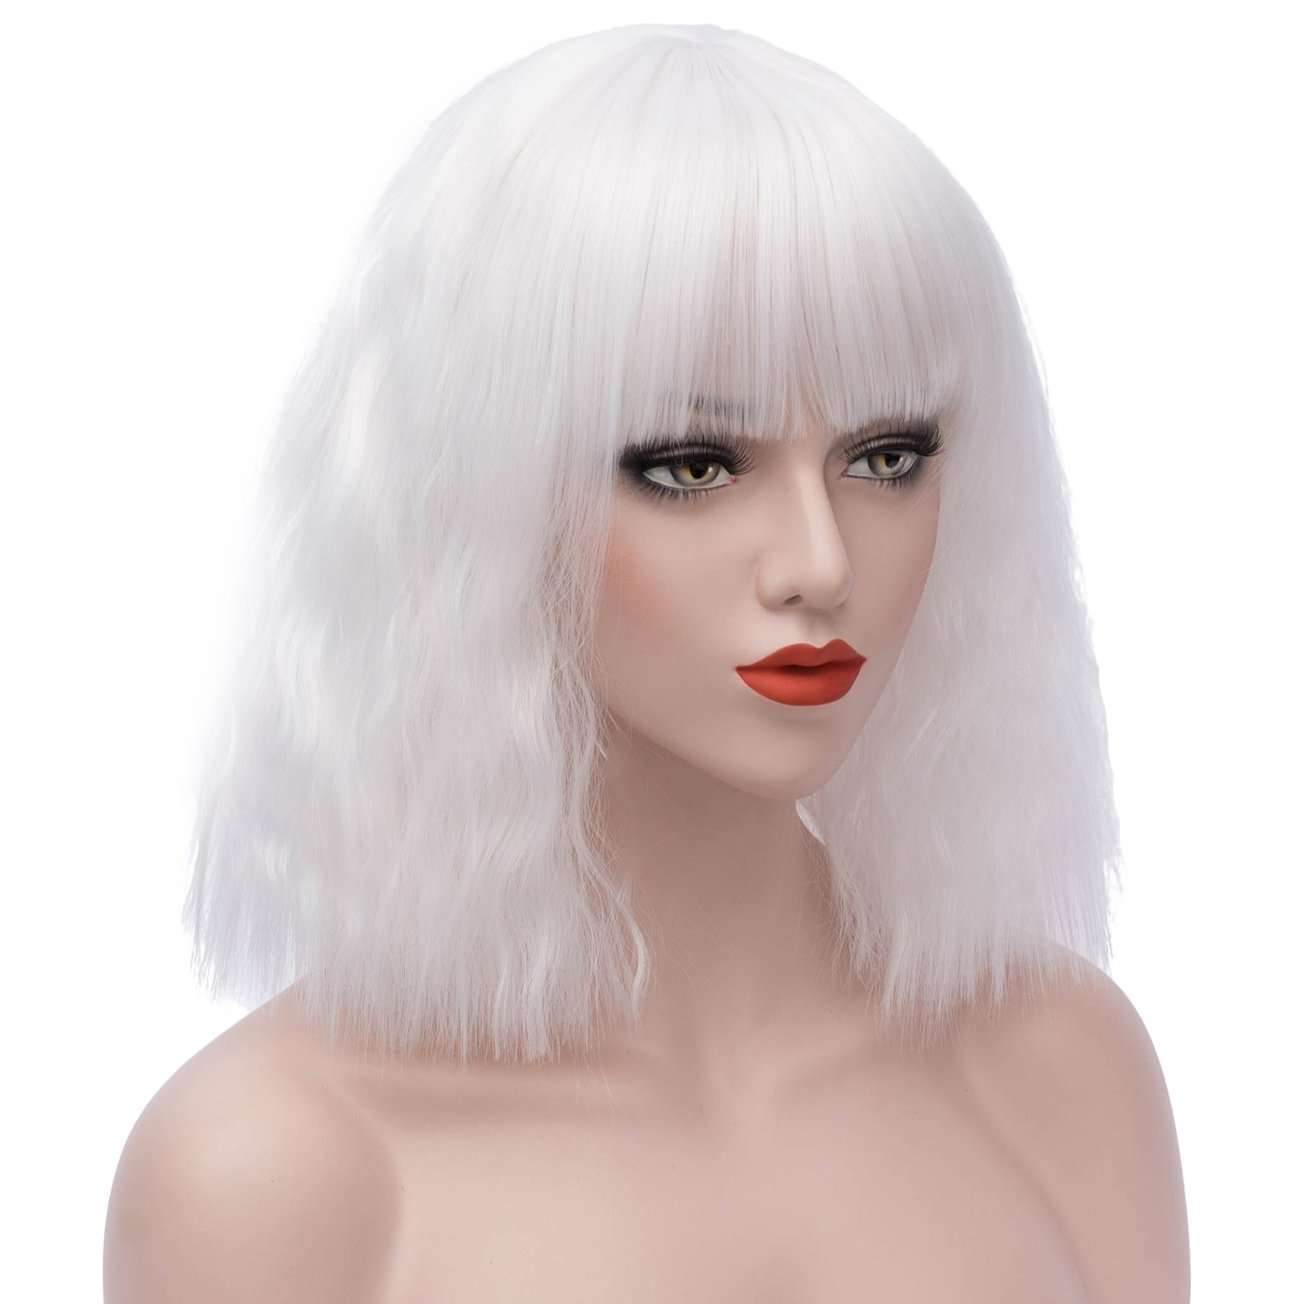 Amazon.com   Cute Short White Wigs Women s Fluffy Curly Bobo Hair Wig Heat  Resistant Fashion Hairstyles Custom Cosplay Party Wigs 125WH   Beauty 52b8da2a7404